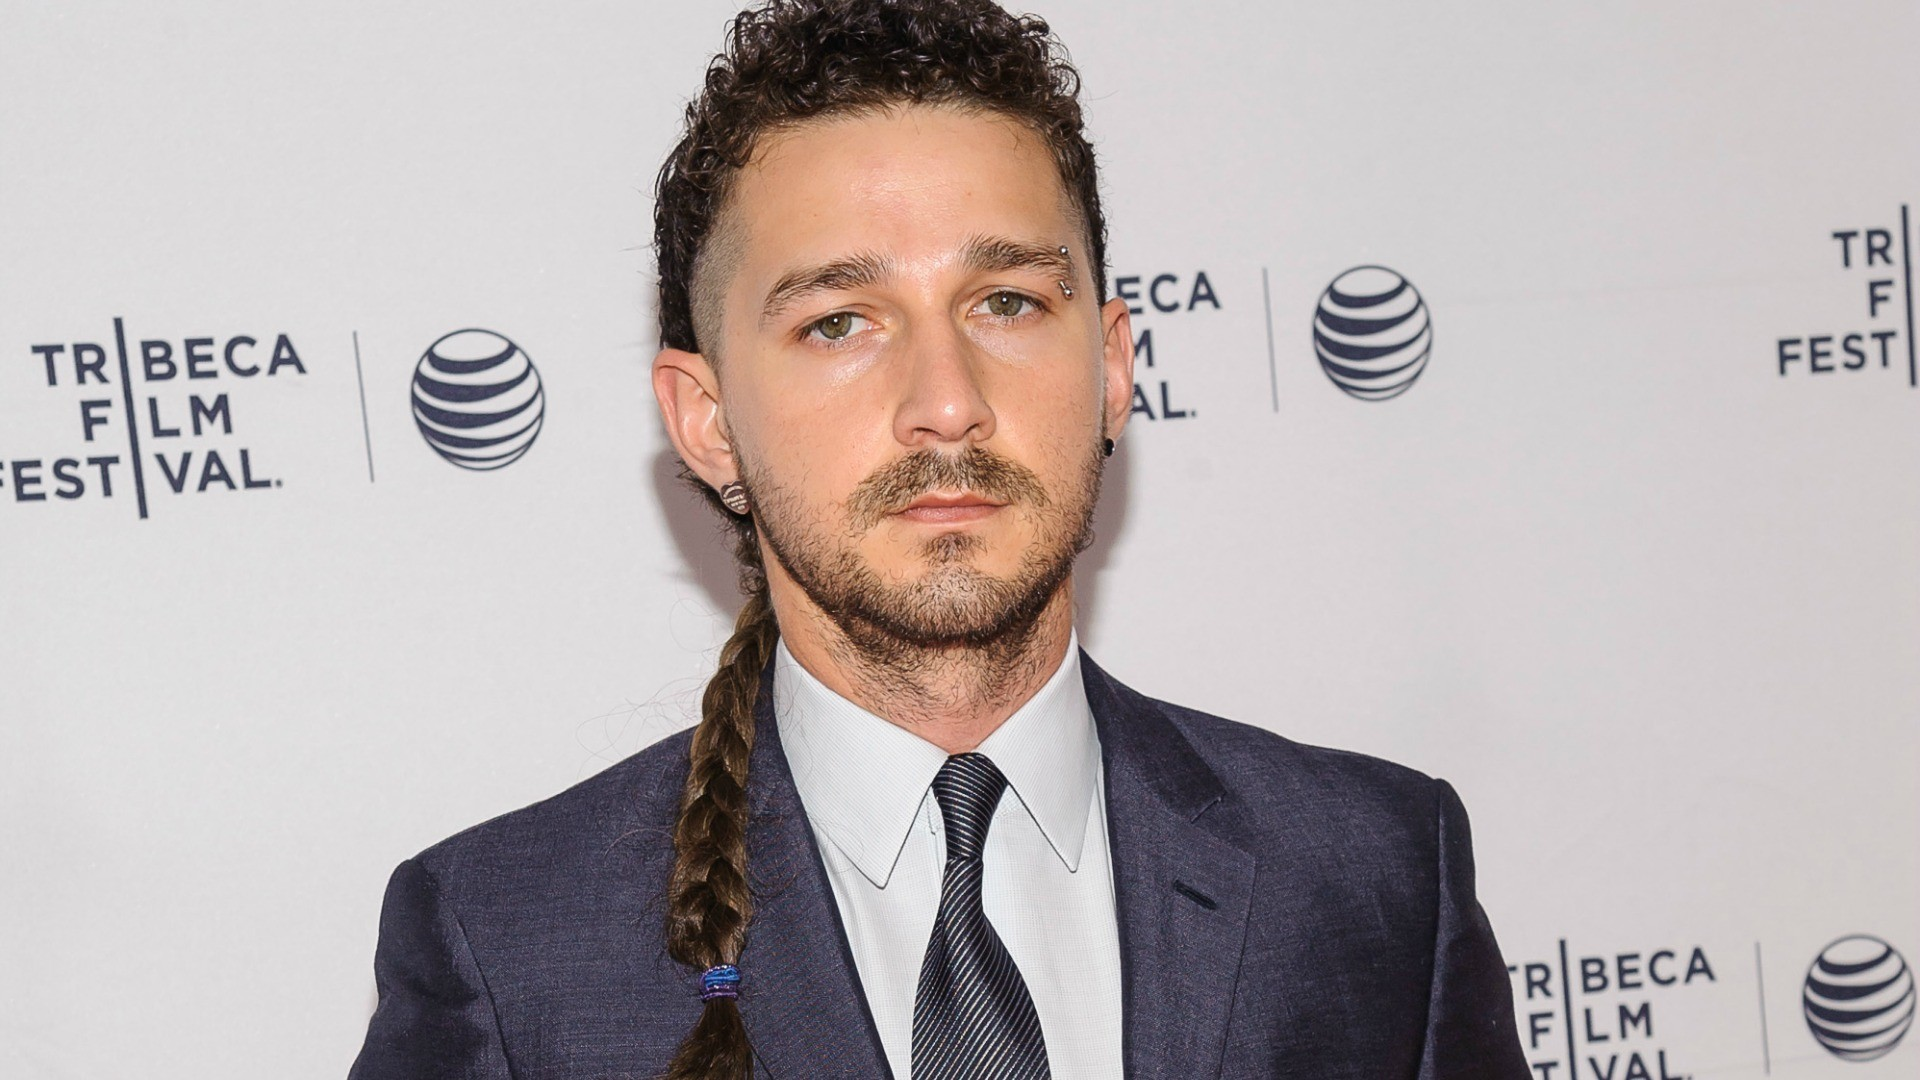 Shia LaBeouf caught on video freestyle rapping, and it's just weird (VIDEO)